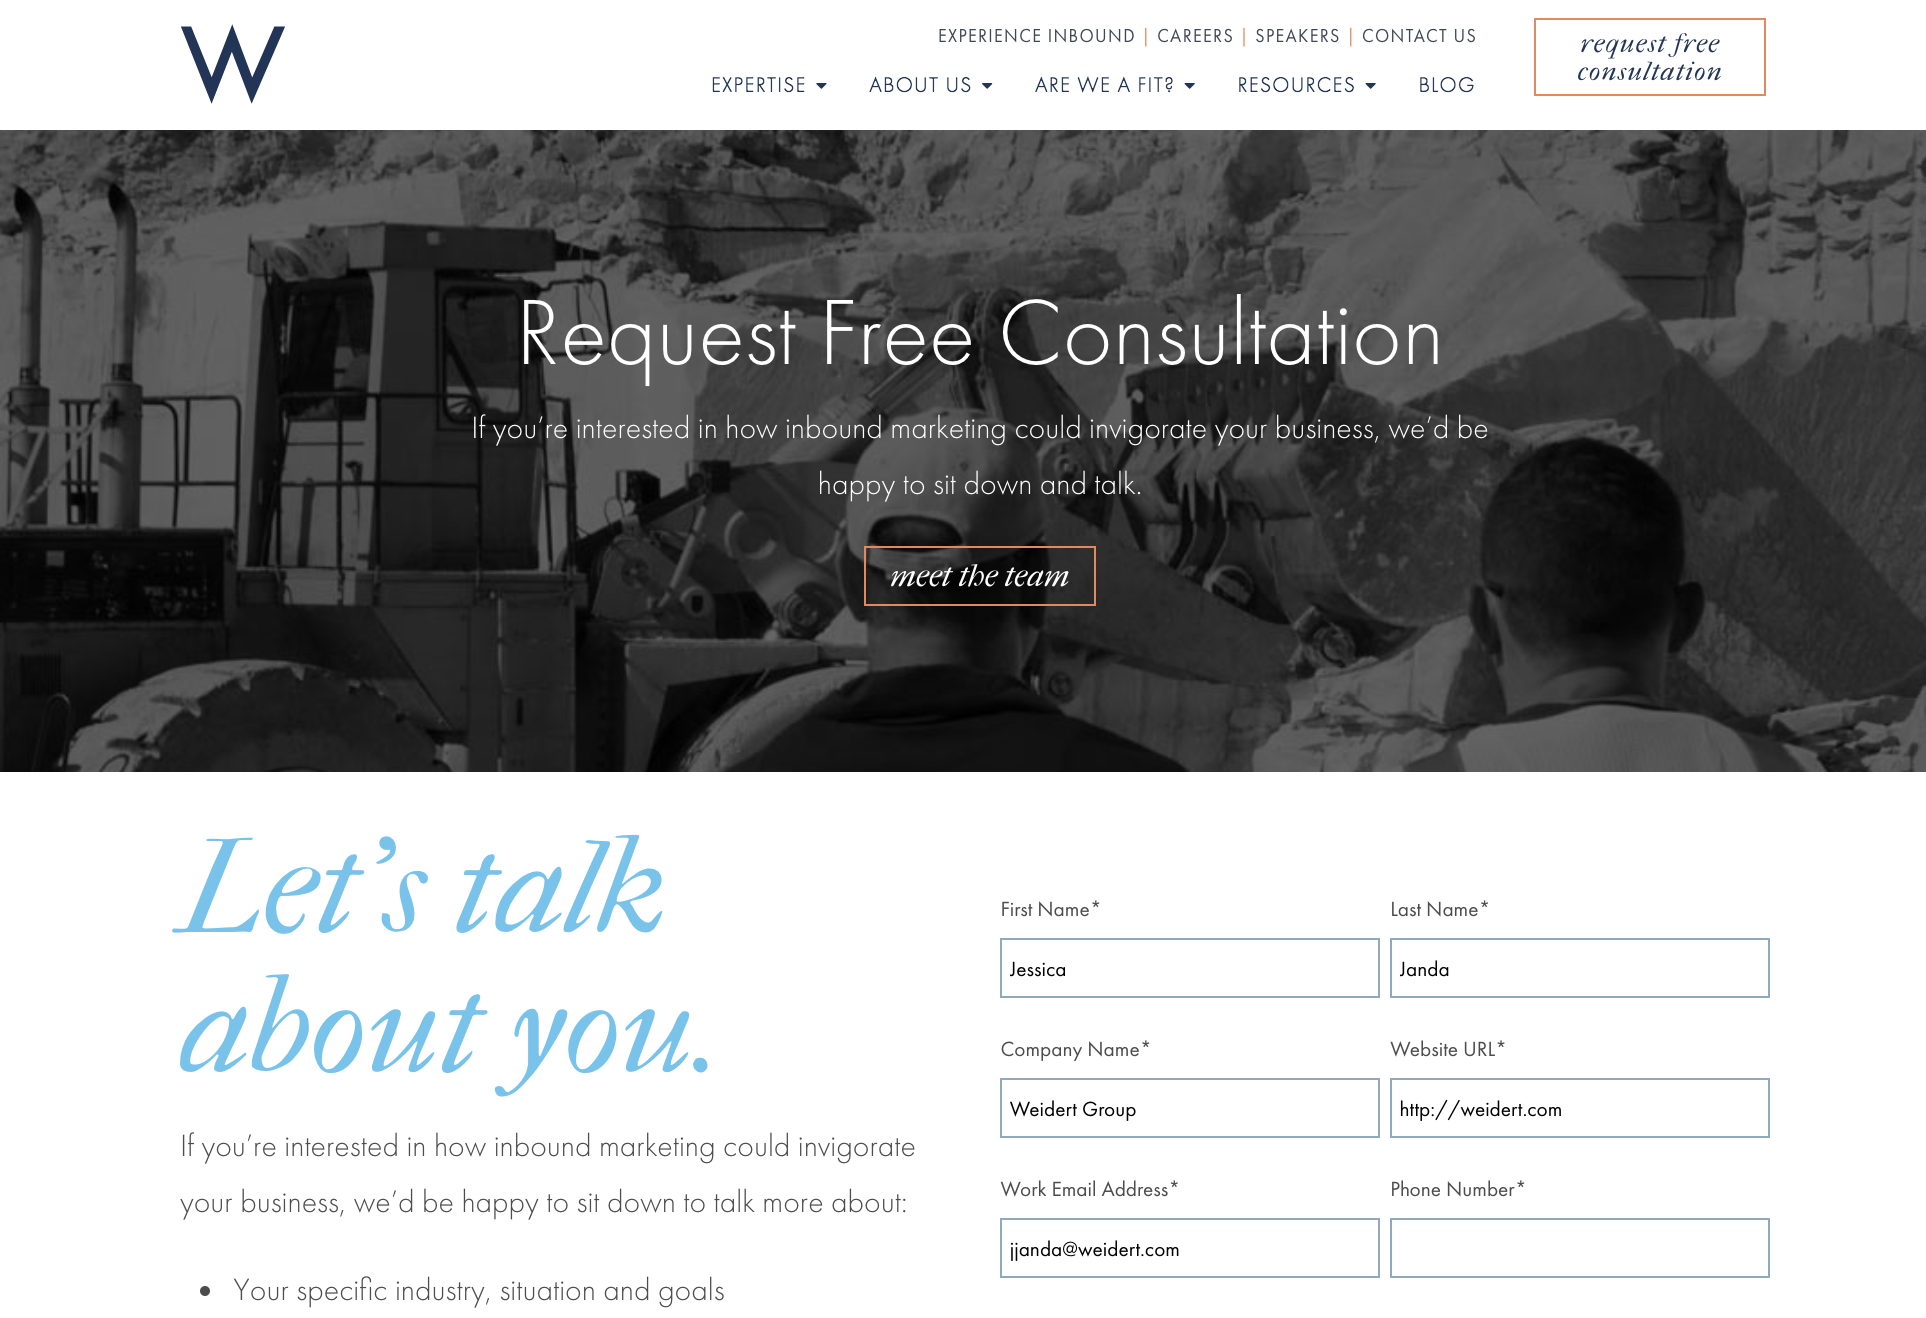 Before Free Consultation page